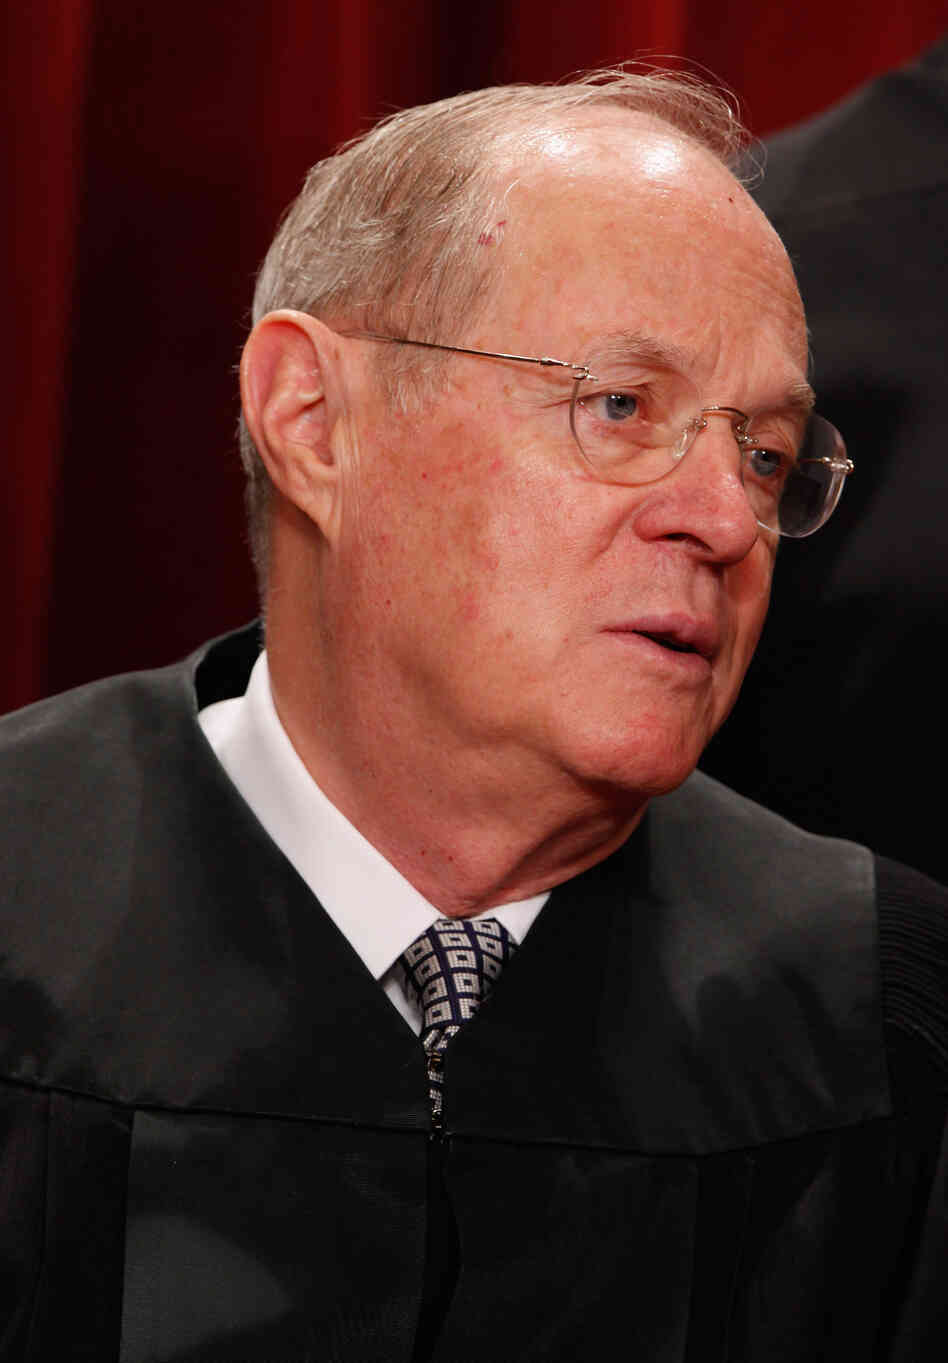 Justice Anthony Kennedy, who wrote the Citize